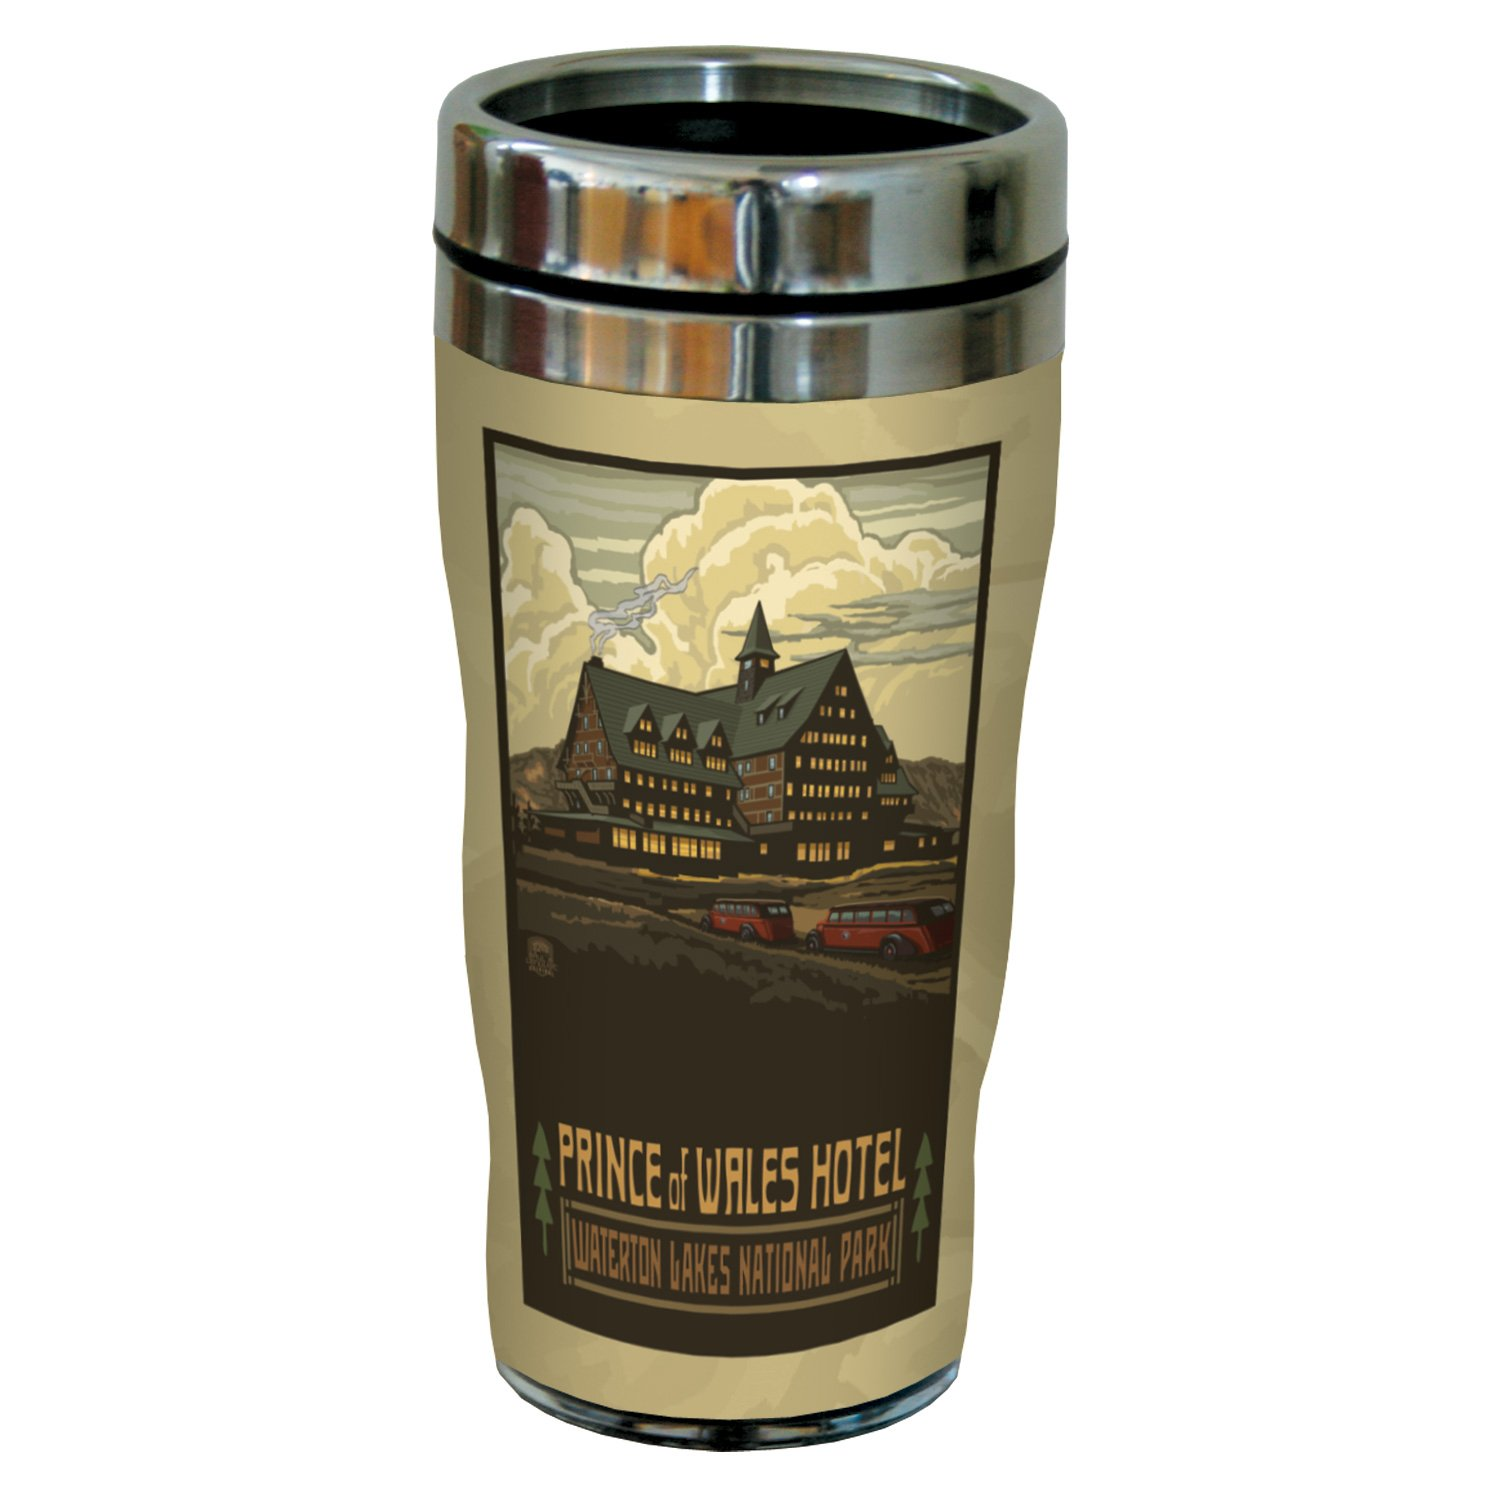 Tree-Free Greetings sg23370 Nostalgic Waterton Lakes Park Prince of Wales Hotel by Paul A. Lanquist Stainless Steel Sip 'N Go Tumbler, 16-Ounce